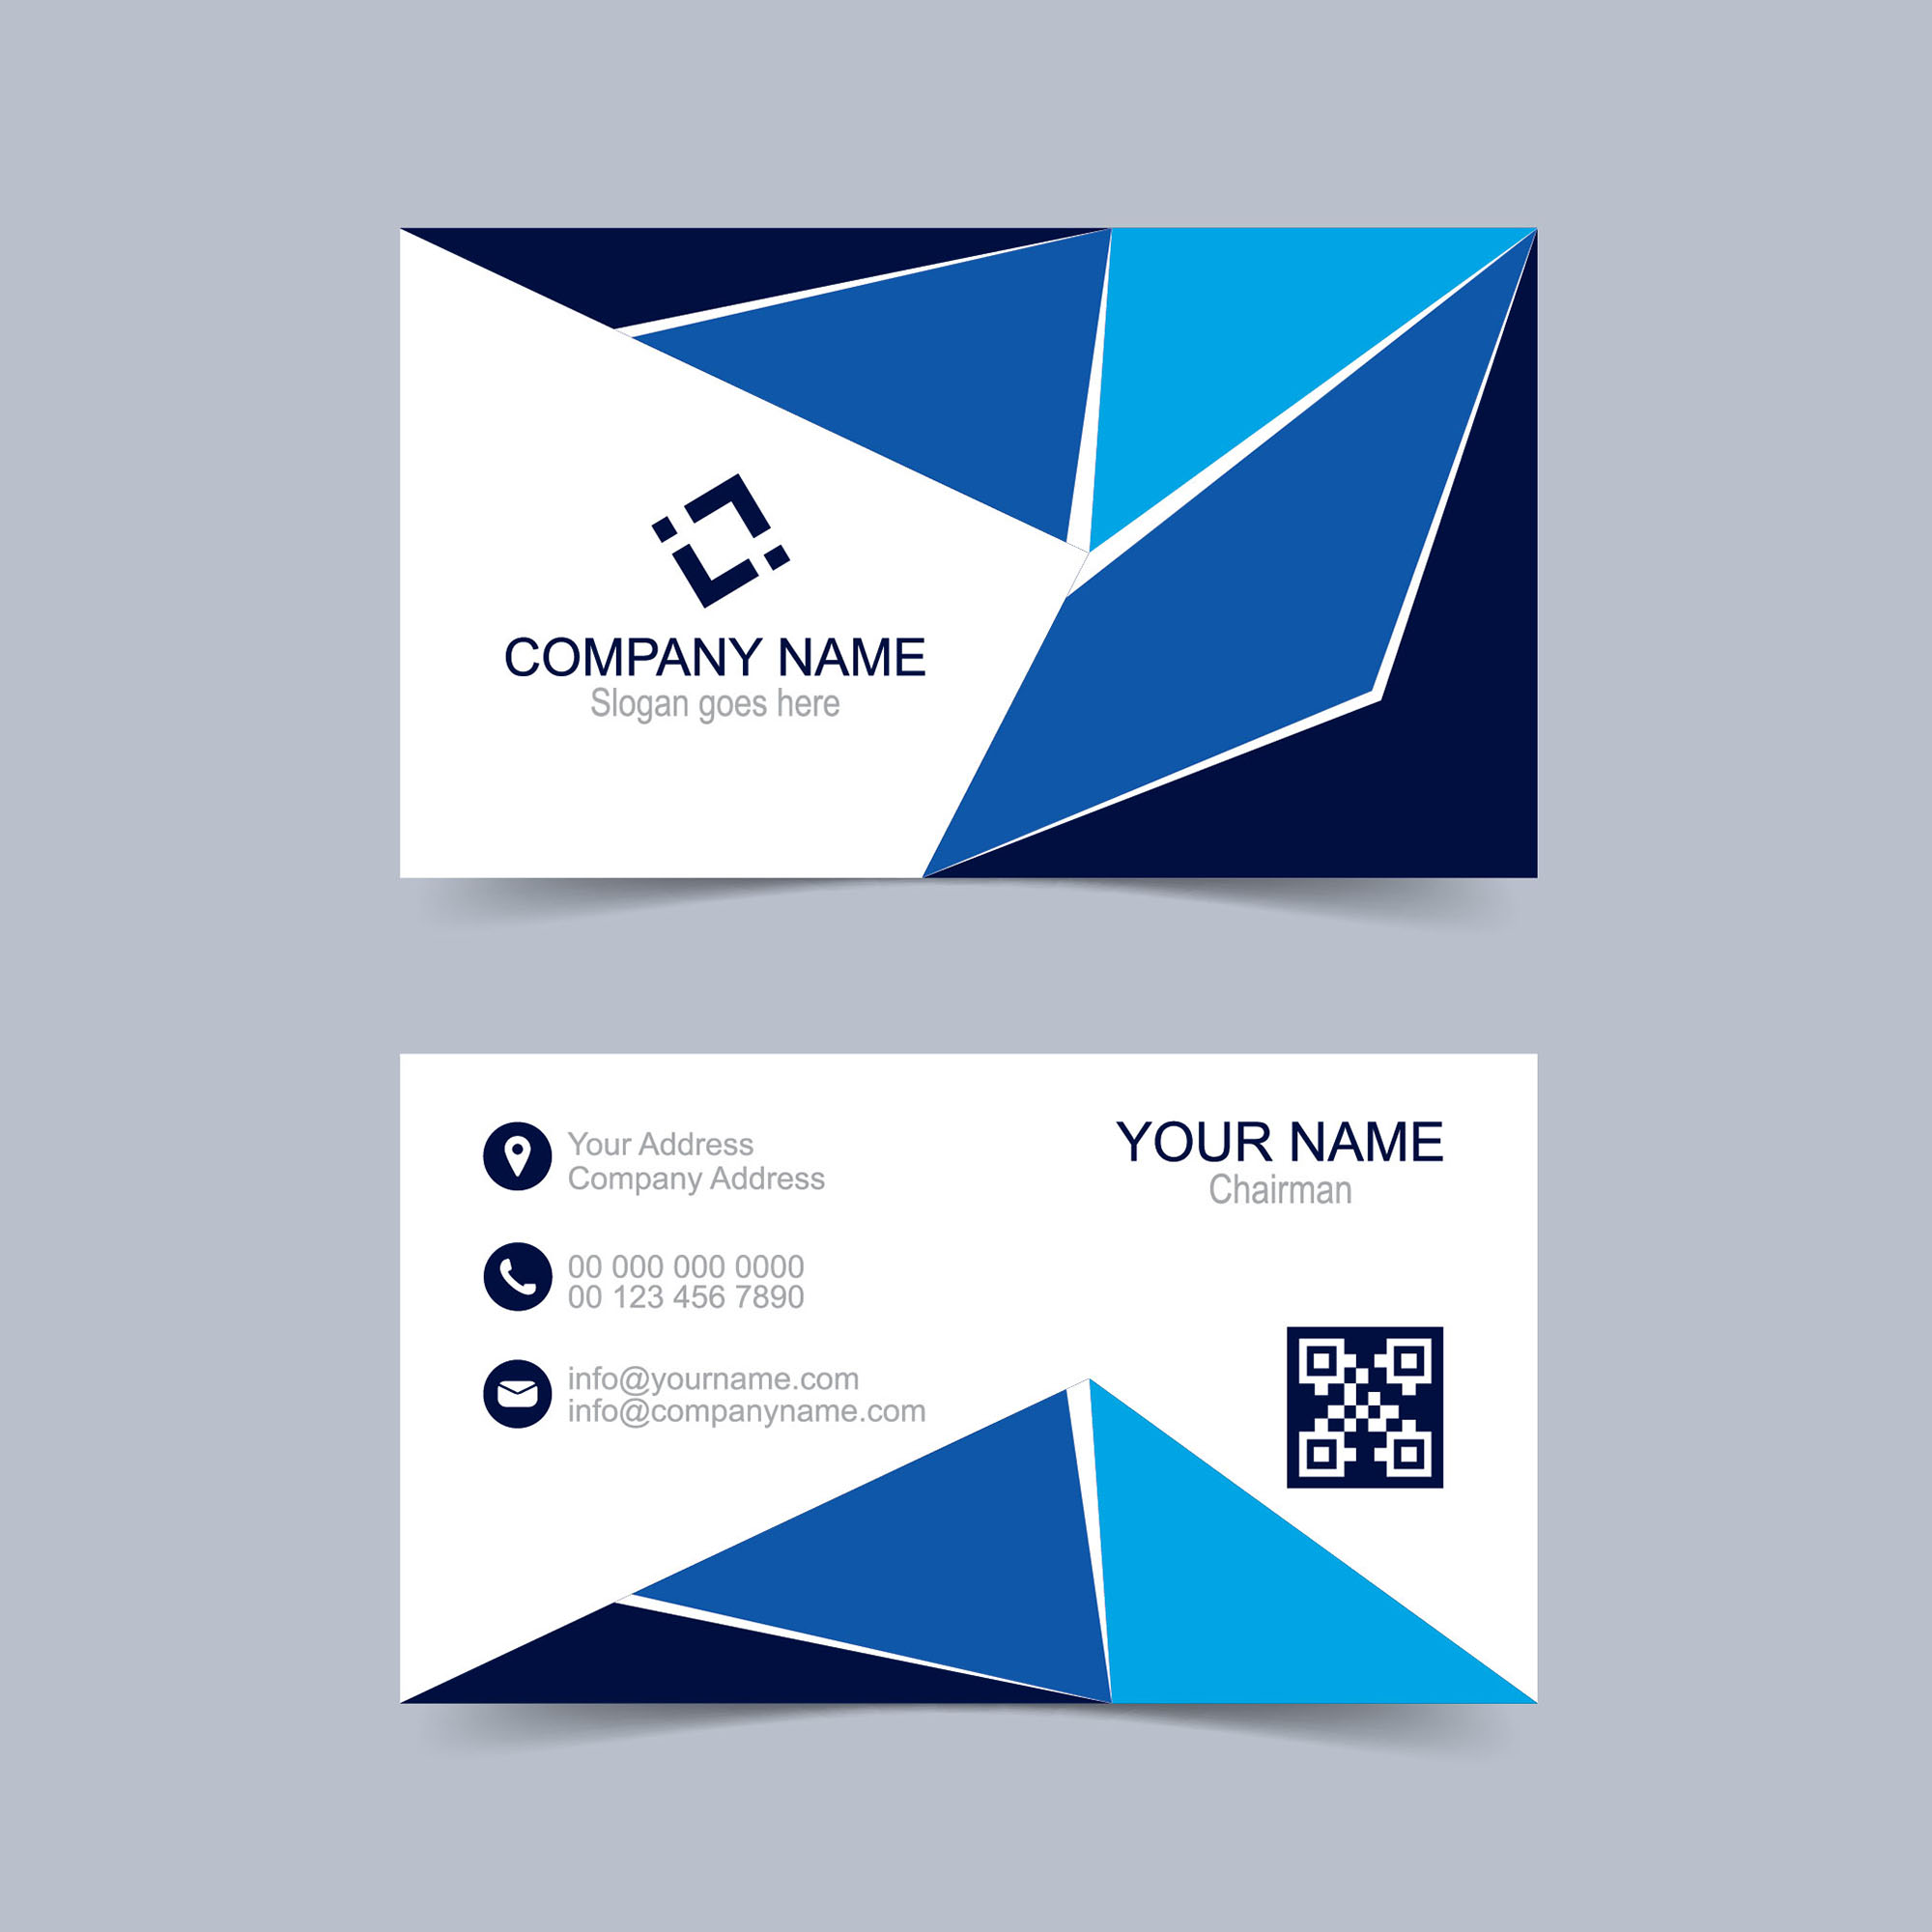 Creative Business Card Design Free Download Wisxicom - Free business card layout template